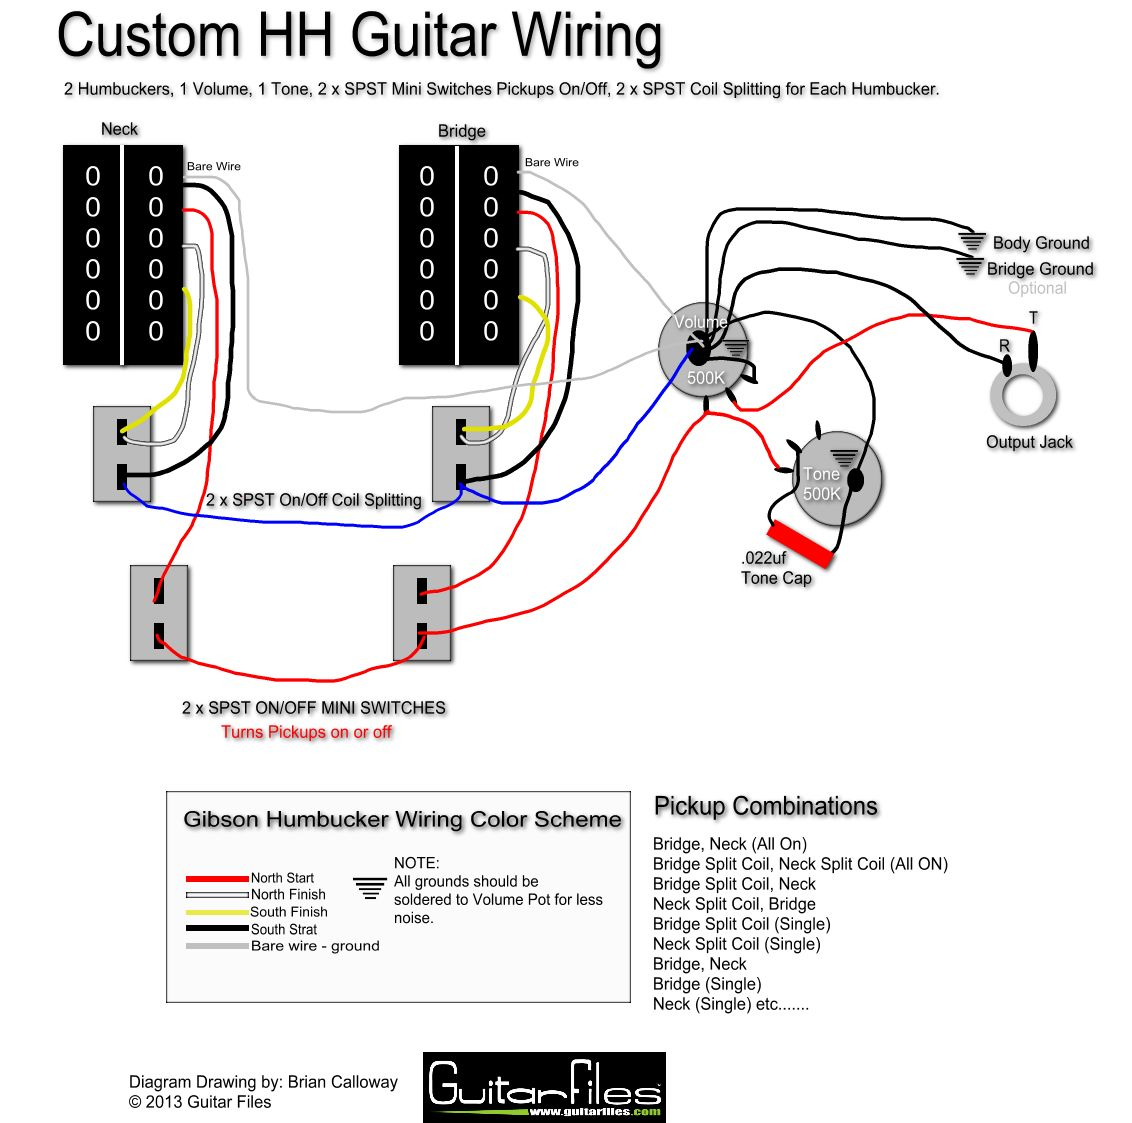 Hh Wiring Diagram Hh Way Switch Wiring Hh Image Wiring Diagram